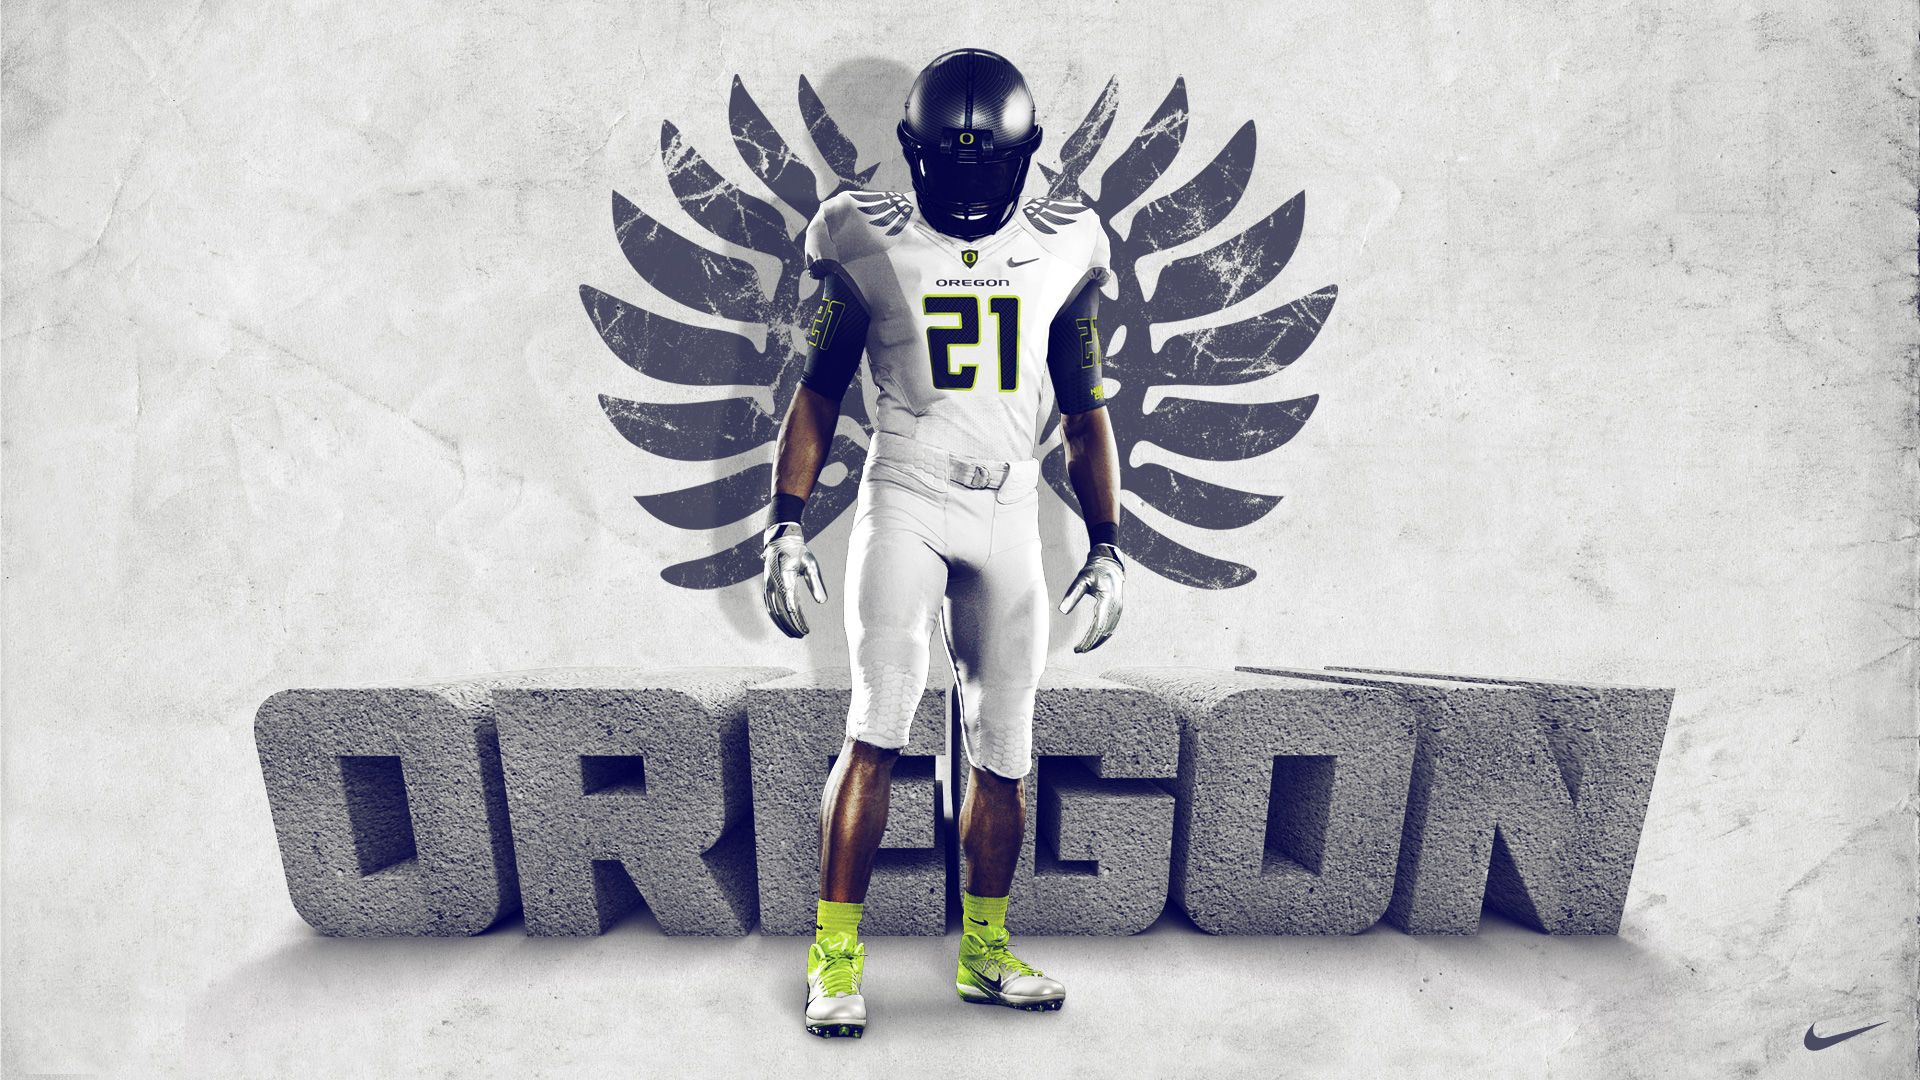 Pin by 12thDuck on The Oregon Duck University of Oregon Ducks 1920x1080